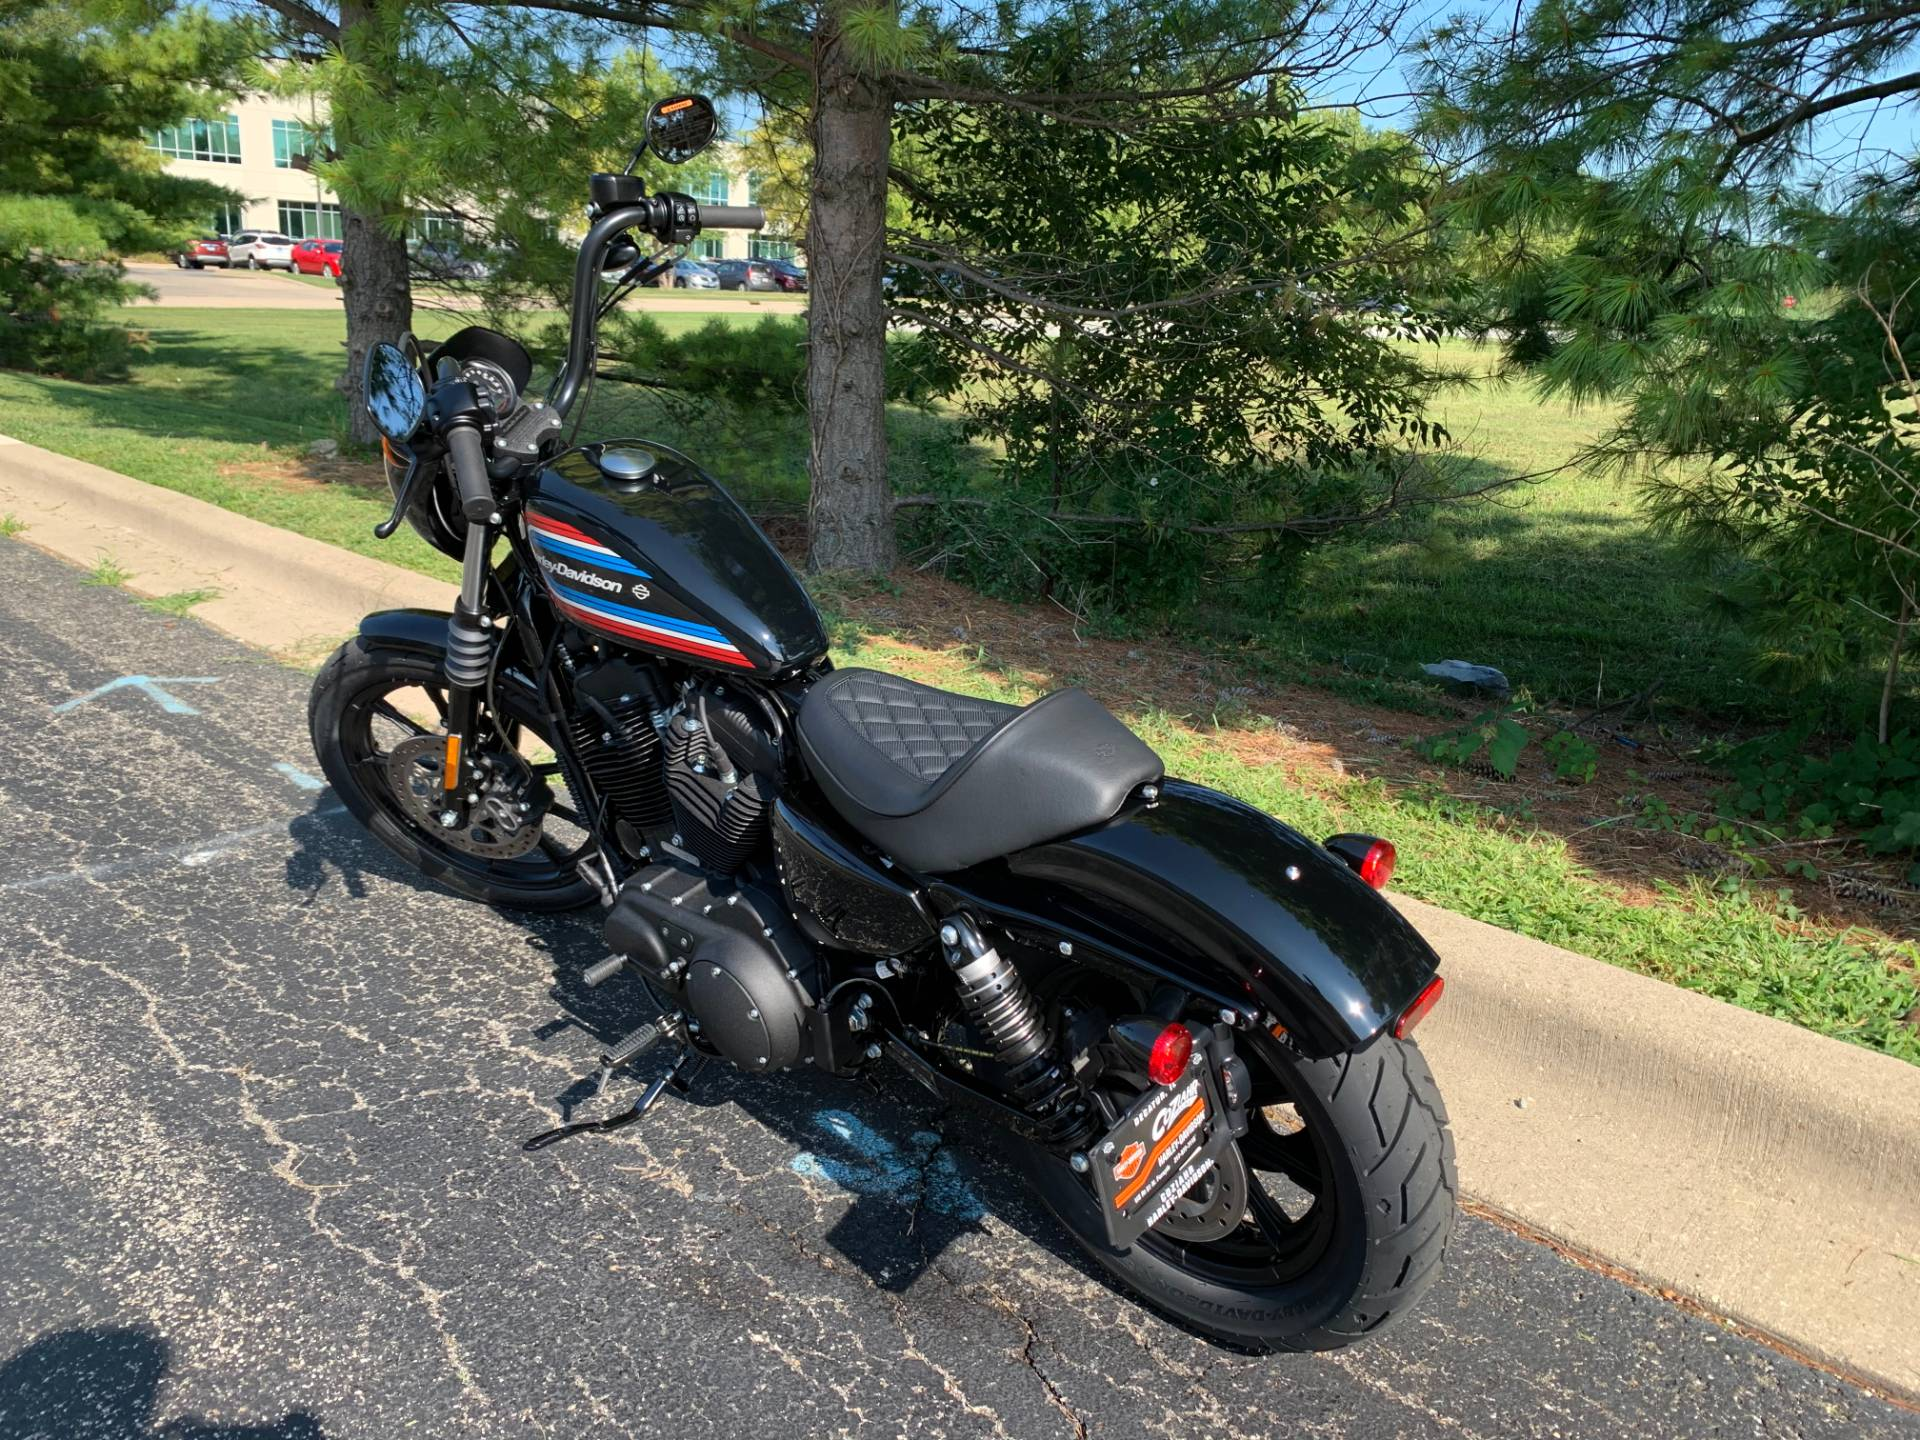 2020 Harley-Davidson Iron 1200 in Forsyth, Illinois - Photo 6